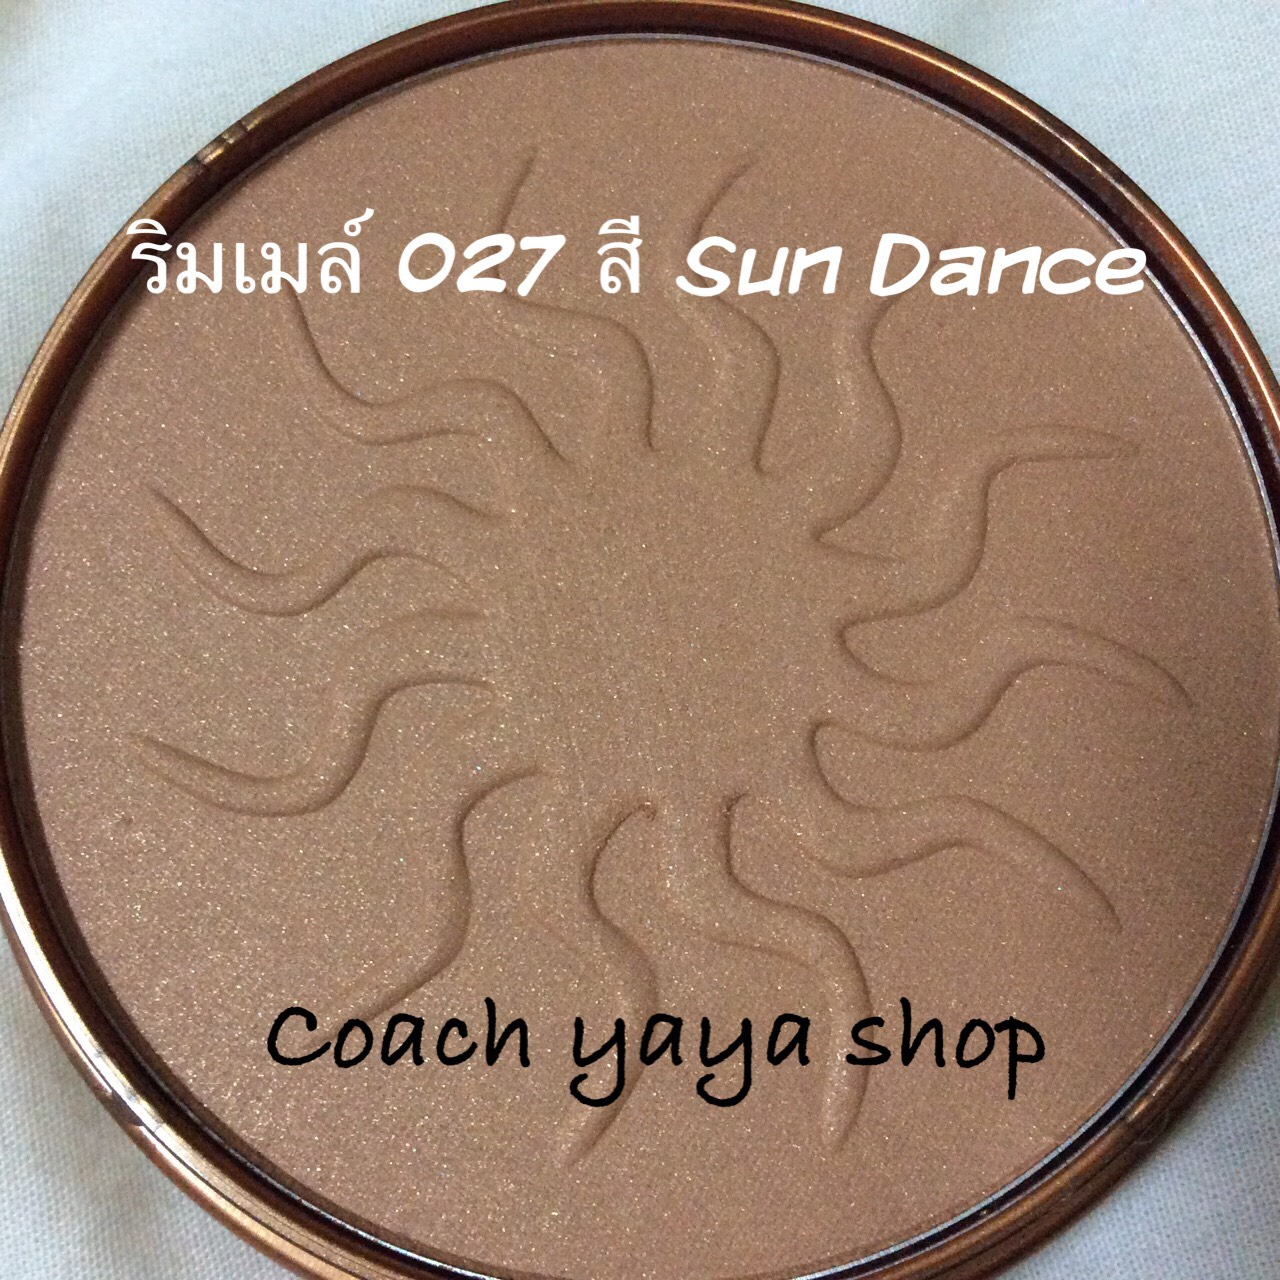 **พร้อมส่ง + ลด70%**rimmel london natural bronzer Sun Dance 027 14g.